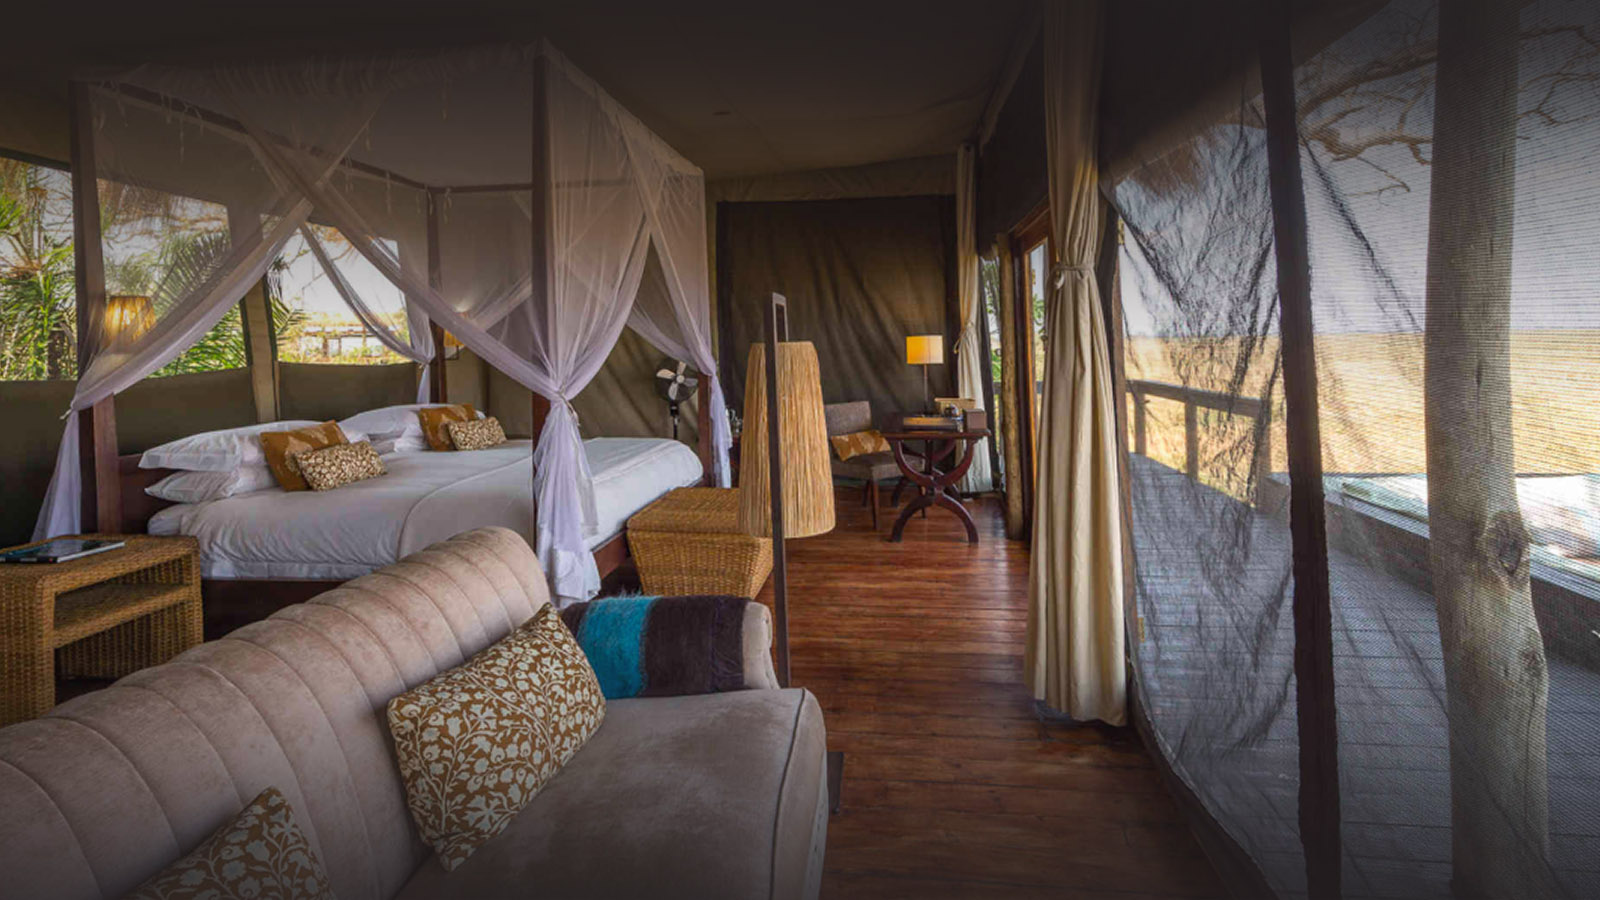 shumba-camp-lodge-zambia-in-style-safari-packages-lodges-kafue-national-park-busanga-plains-luxurious-accommodation-rooms-bed-view